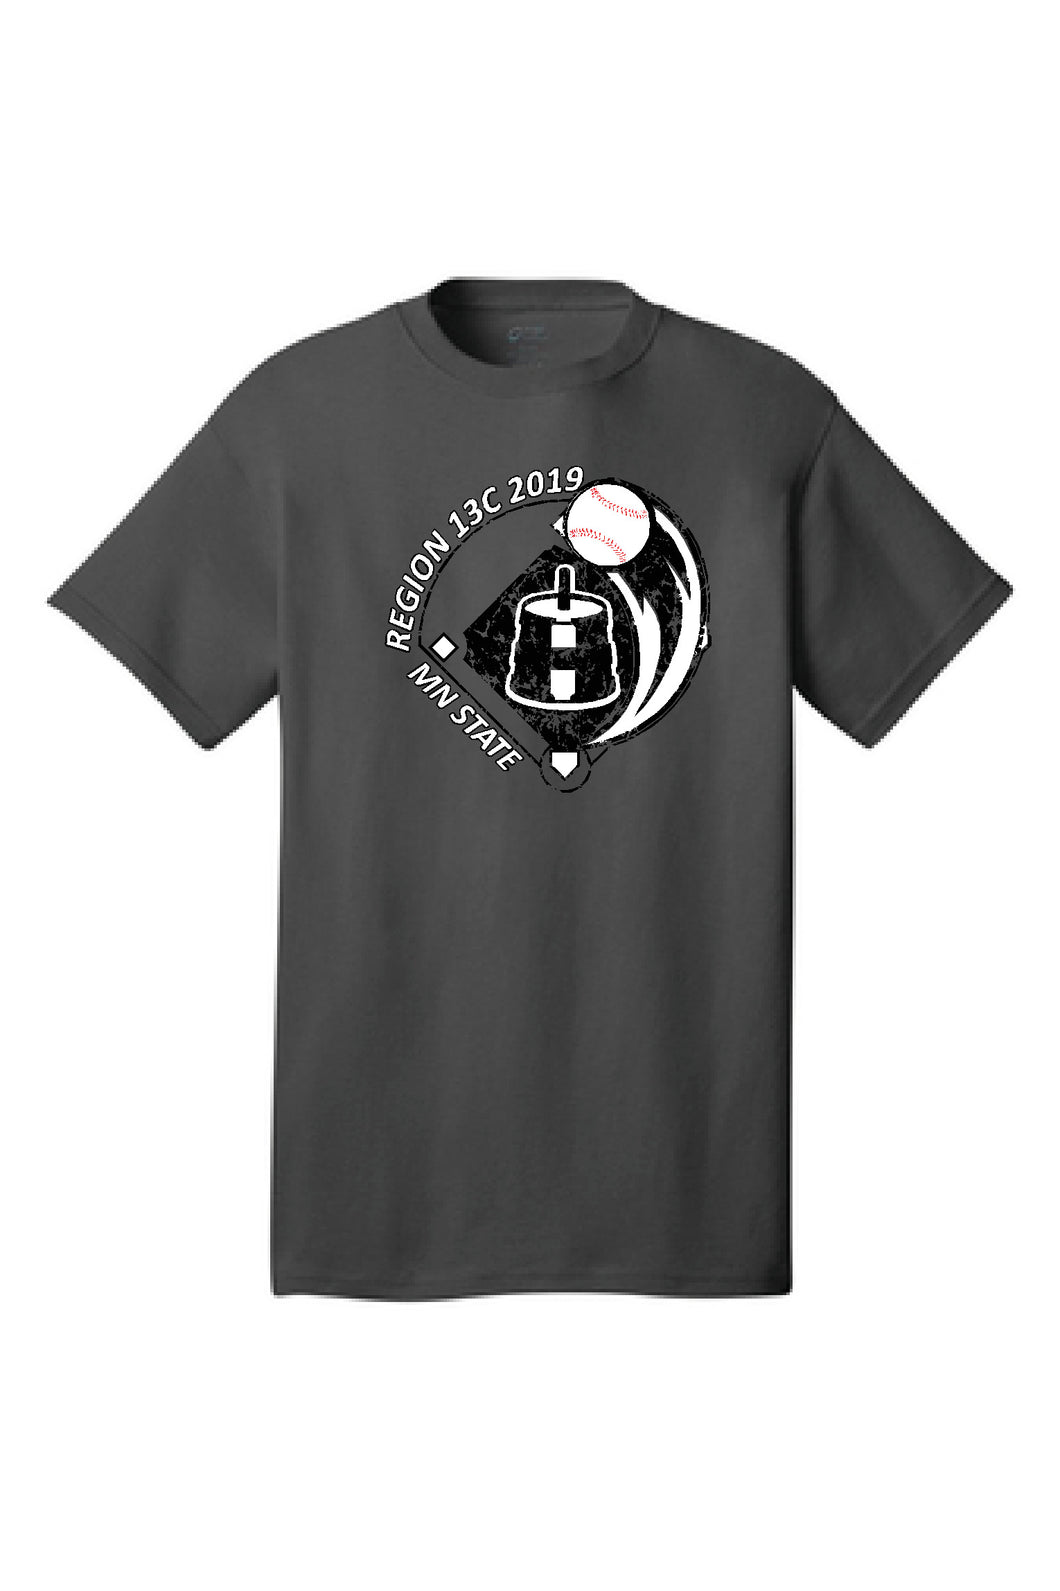 Hadley Buttermakers 2019 Region 13C Shirts